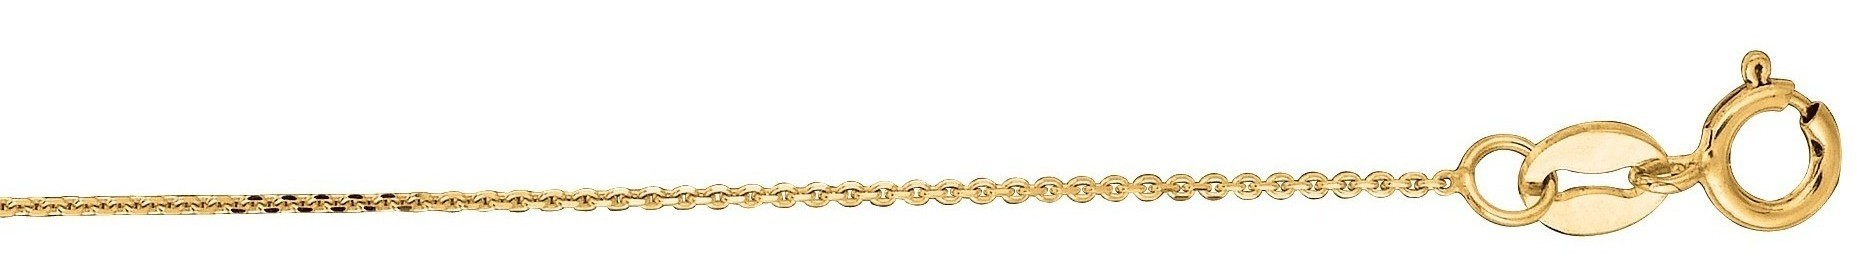 "20"" 14K Yellow Gold 0.8mm (0.03"") Polished Diamond Cut Cable Link Chain w/ Lobster Clasp"